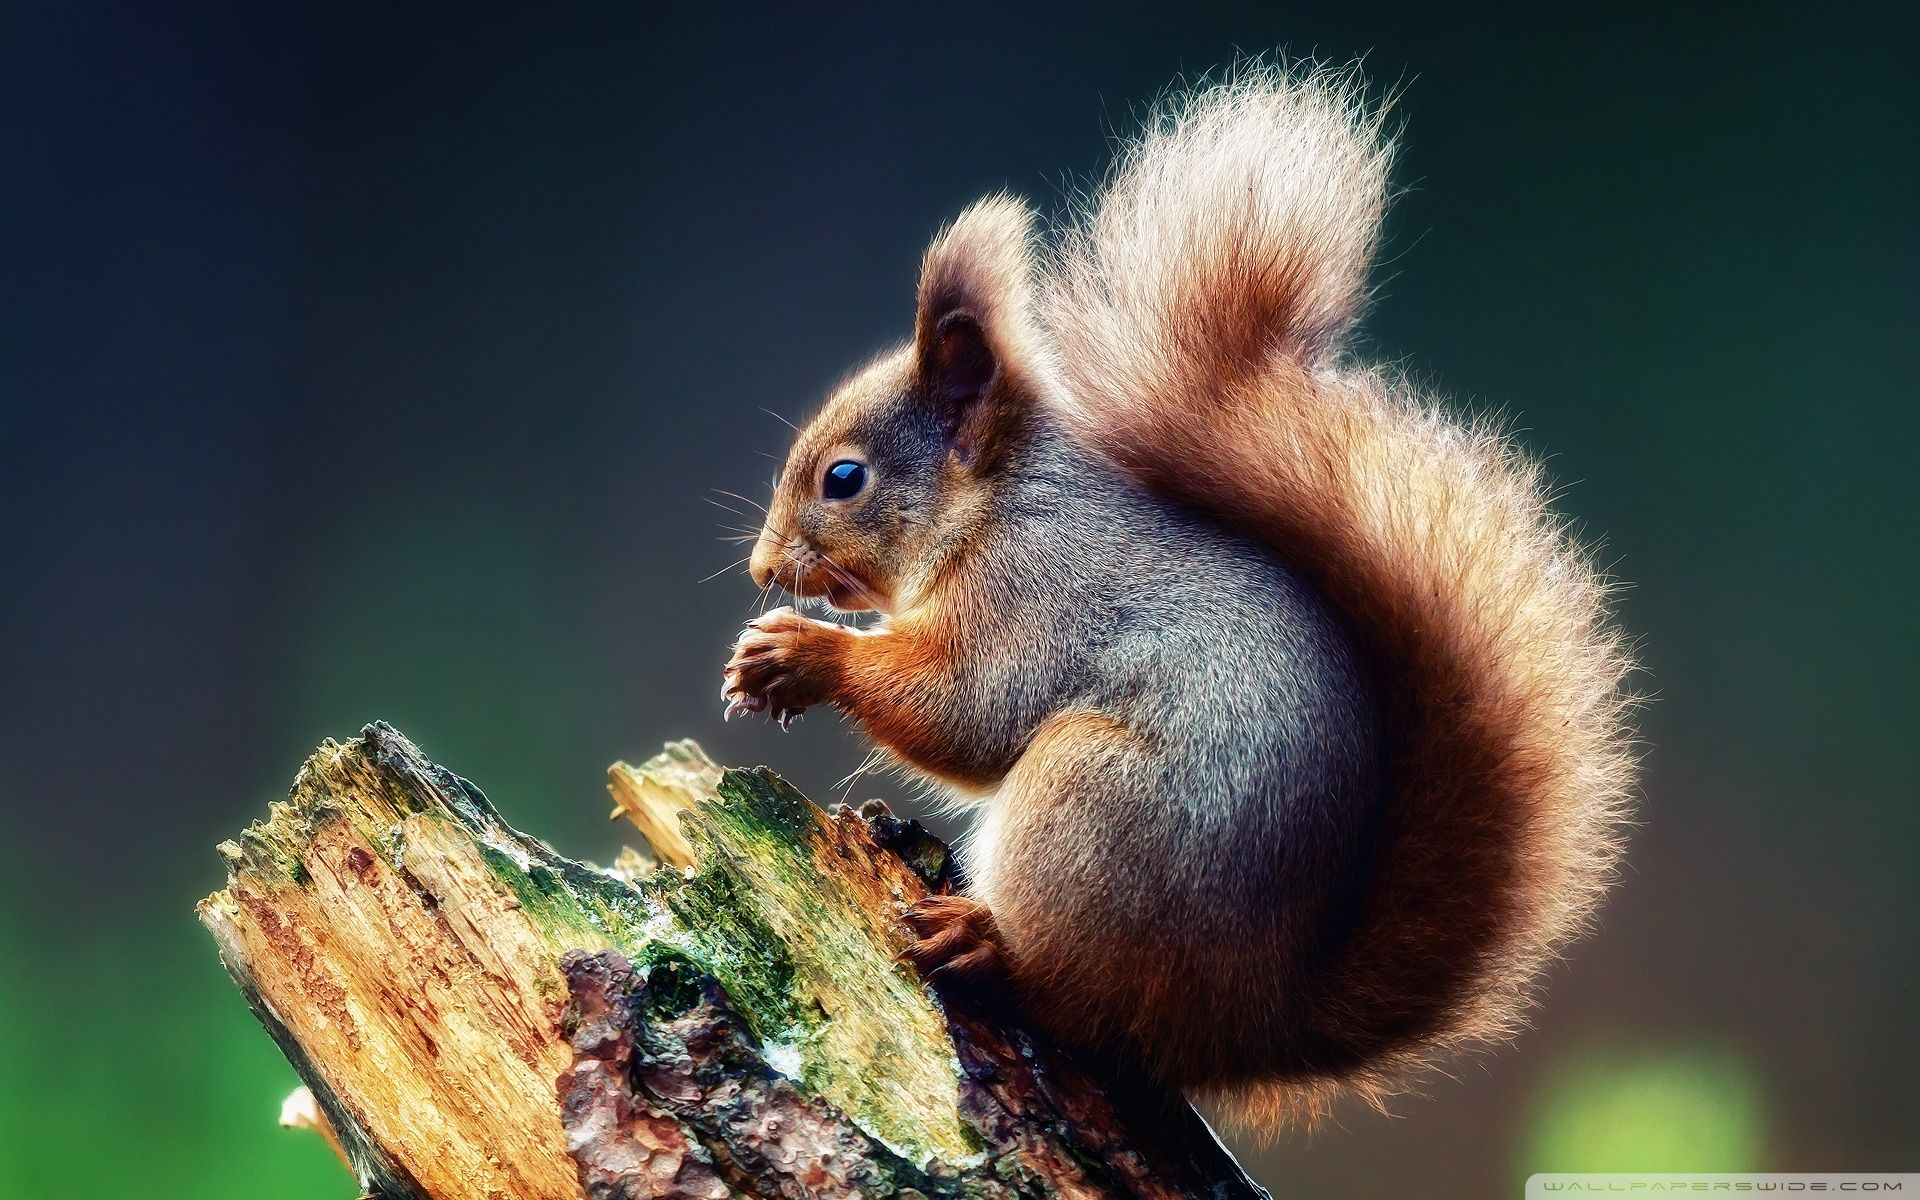 Squirrel Wallpapers Android Apps on Google Play